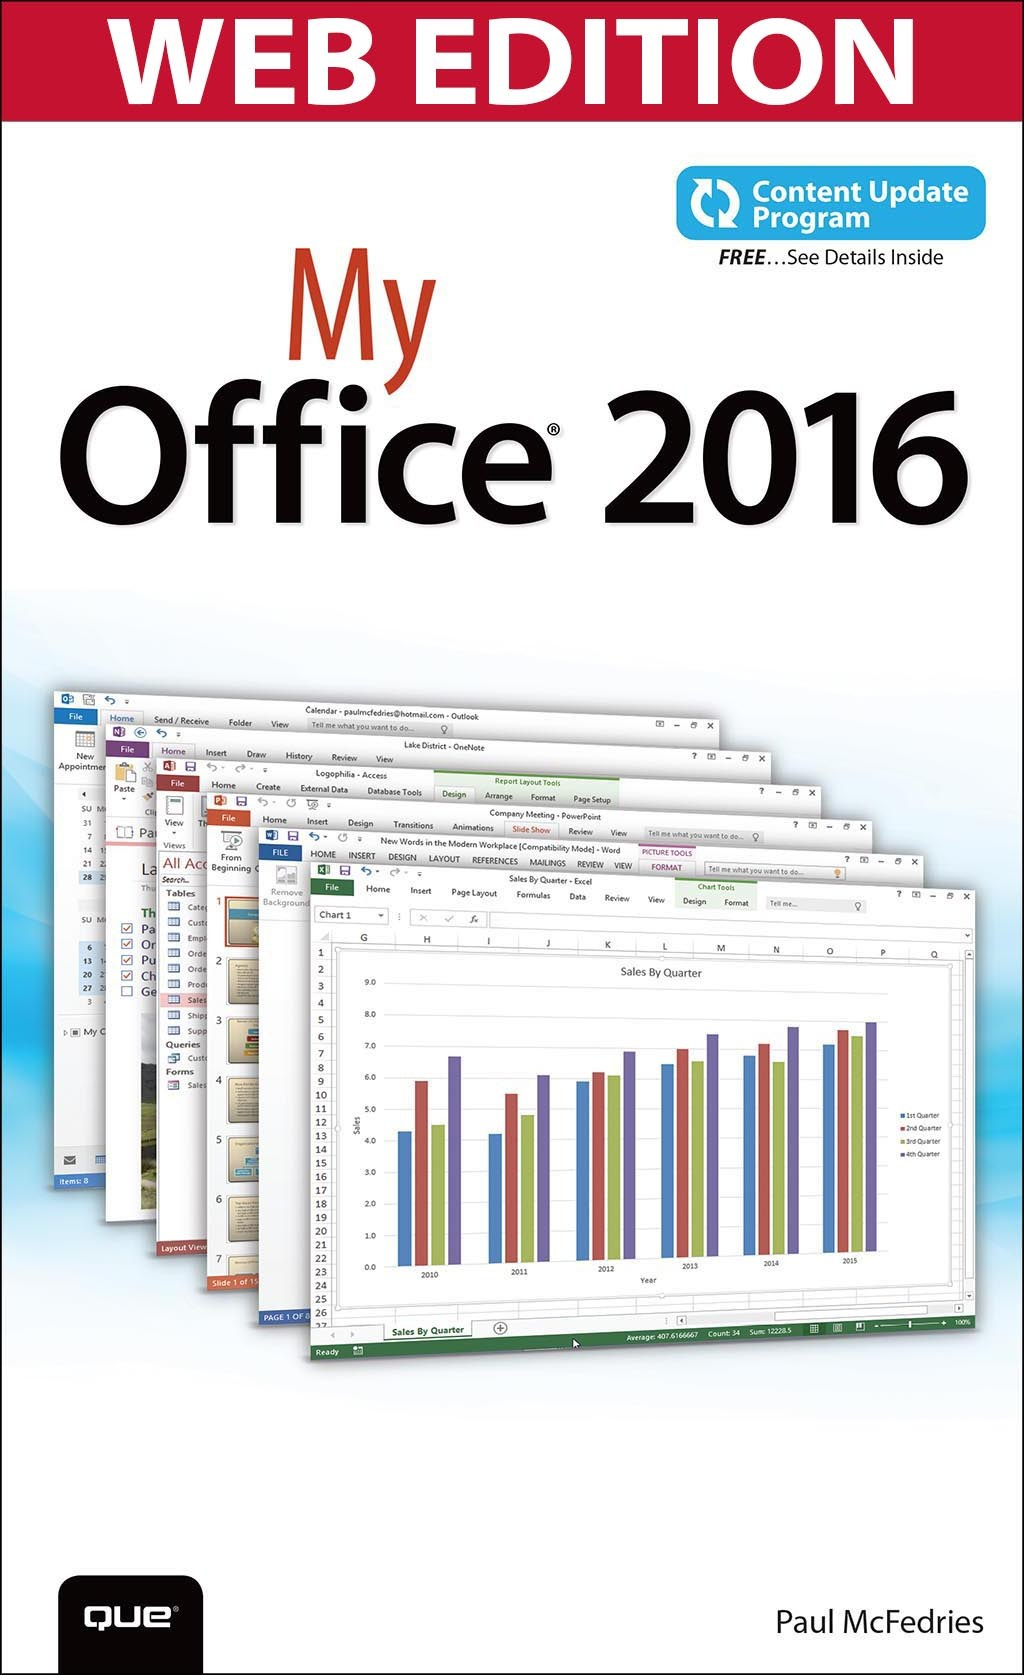 My Office 2016 (Web Edition and Content Update Program)